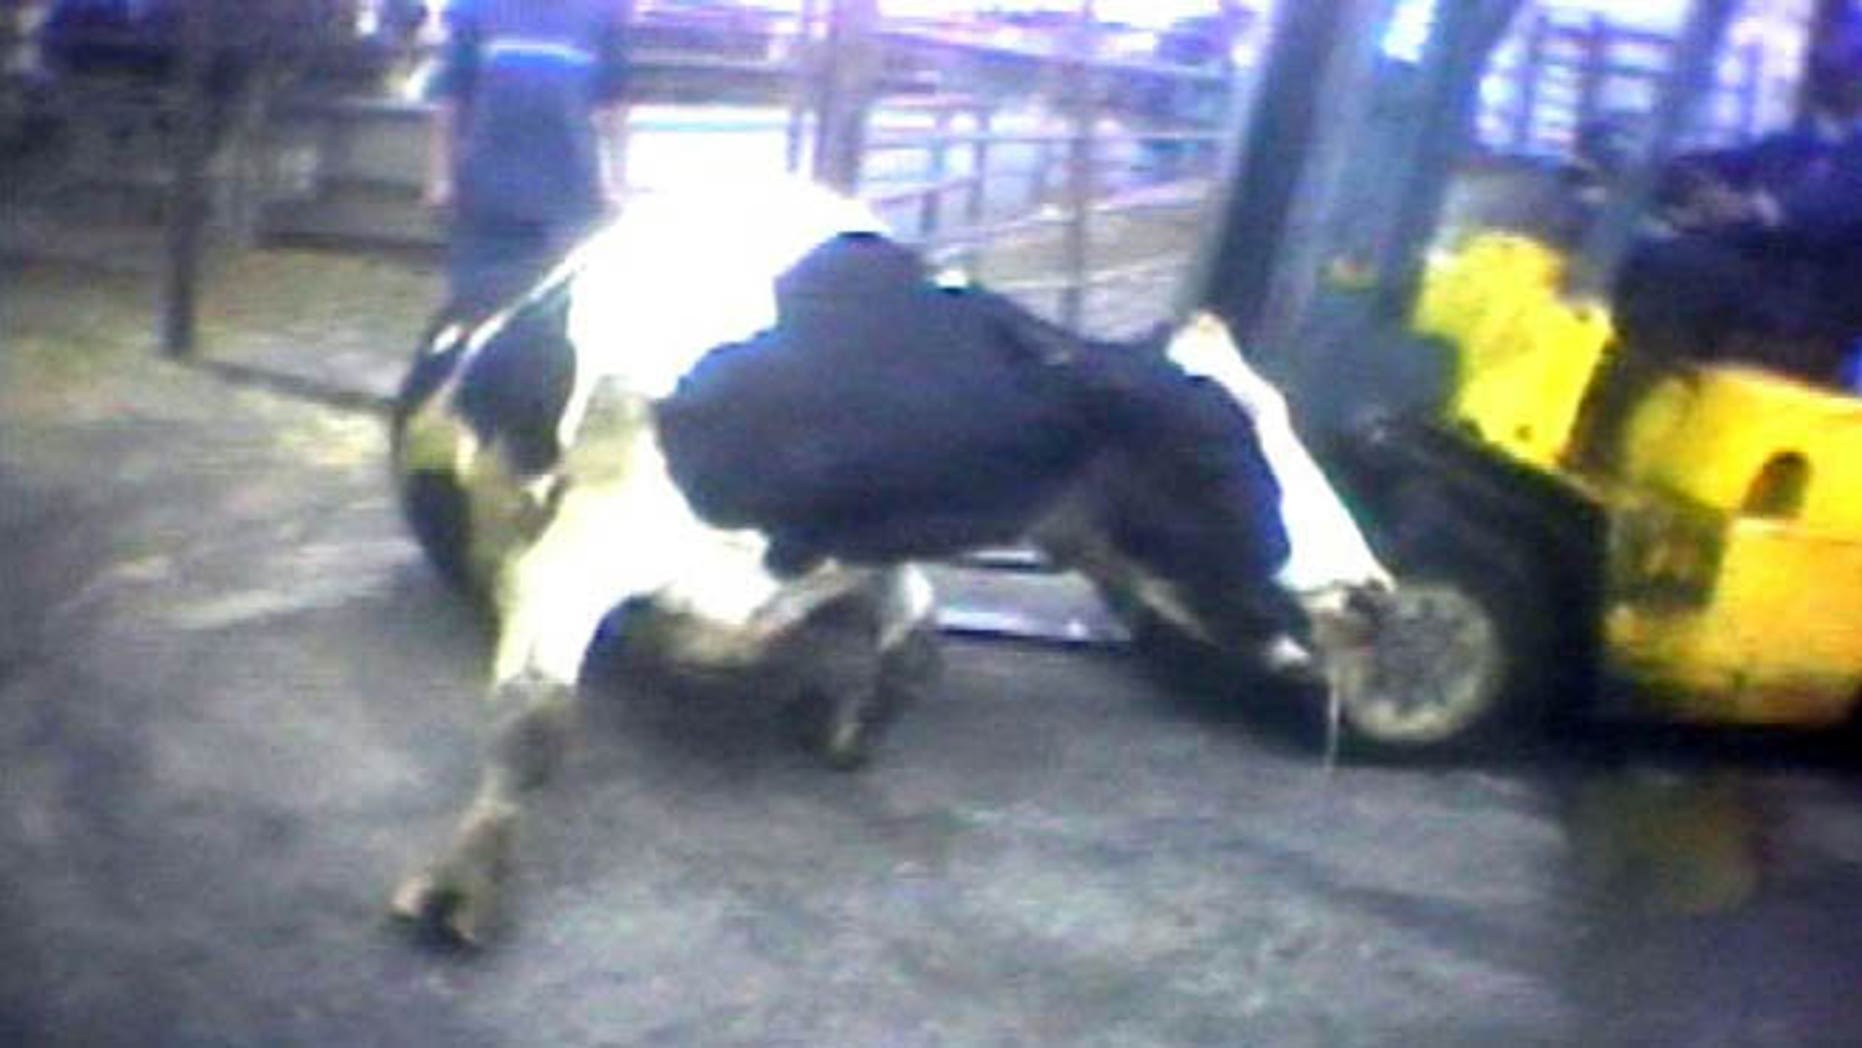 """April 22, 2010: In this file image from video provided by the United States Humane Society, a Hallmark Meat Packing slaughter plant worker is shown attempting to force a """"downed"""" cow onto its feet by ramming it with the blades of a forklift in Chino, Calif. State legislators across the country are introducing laws making it harder for animal welfare advocates to investigate cruelty and food safety cases."""